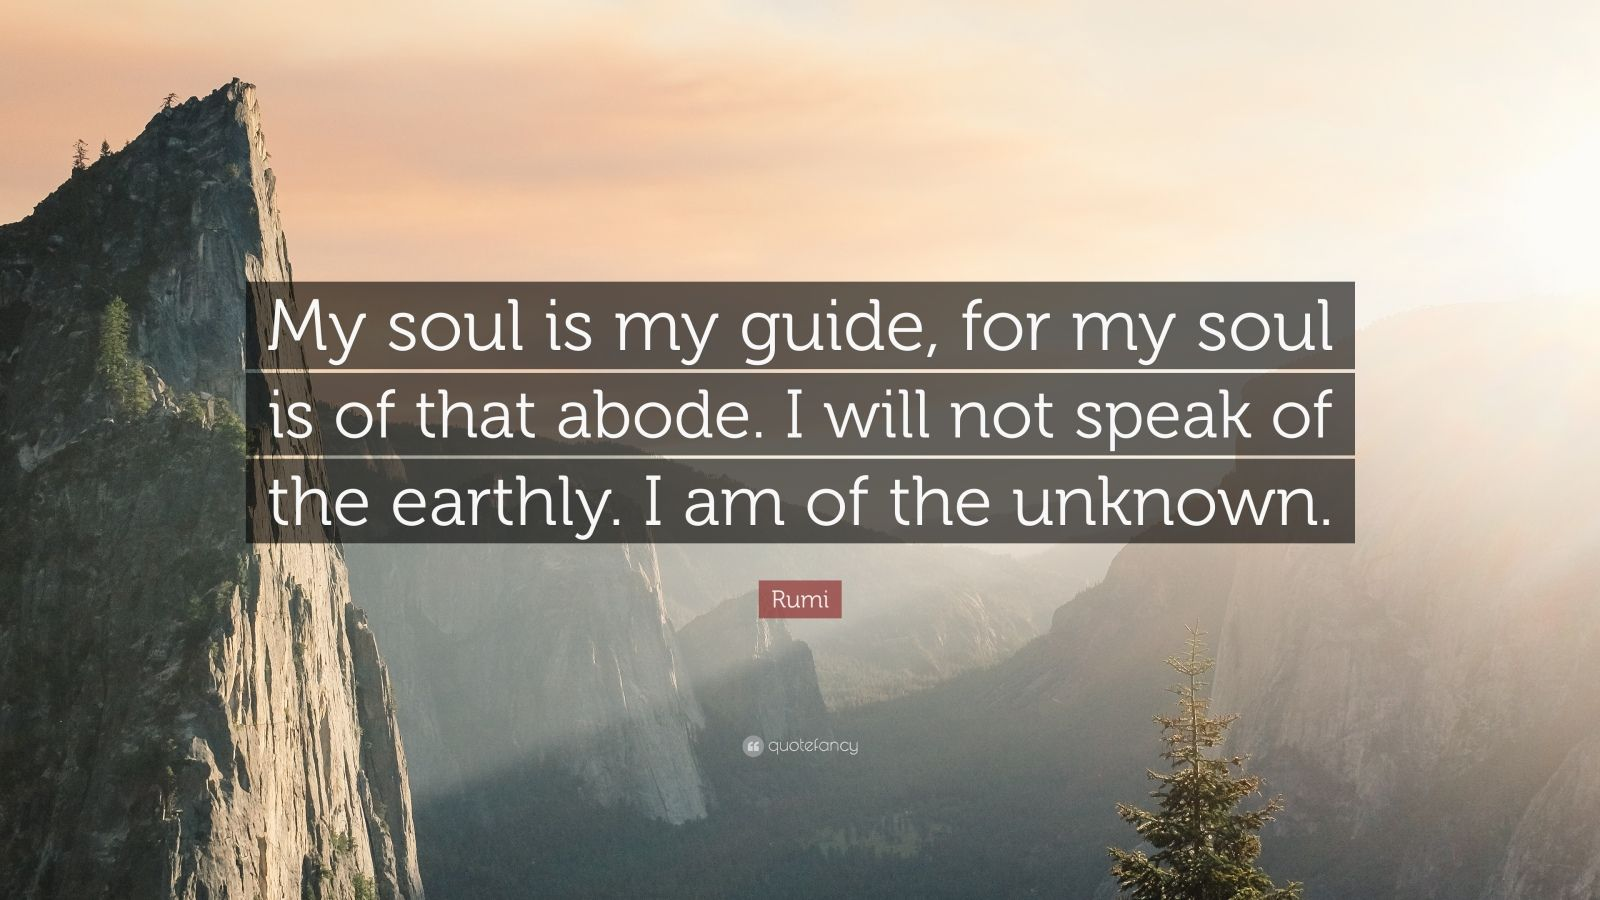 """Rumi Quote: """"My soul is my guide, for my soul is of that abode. I will not speak of the earthly. I am of the unknown."""""""